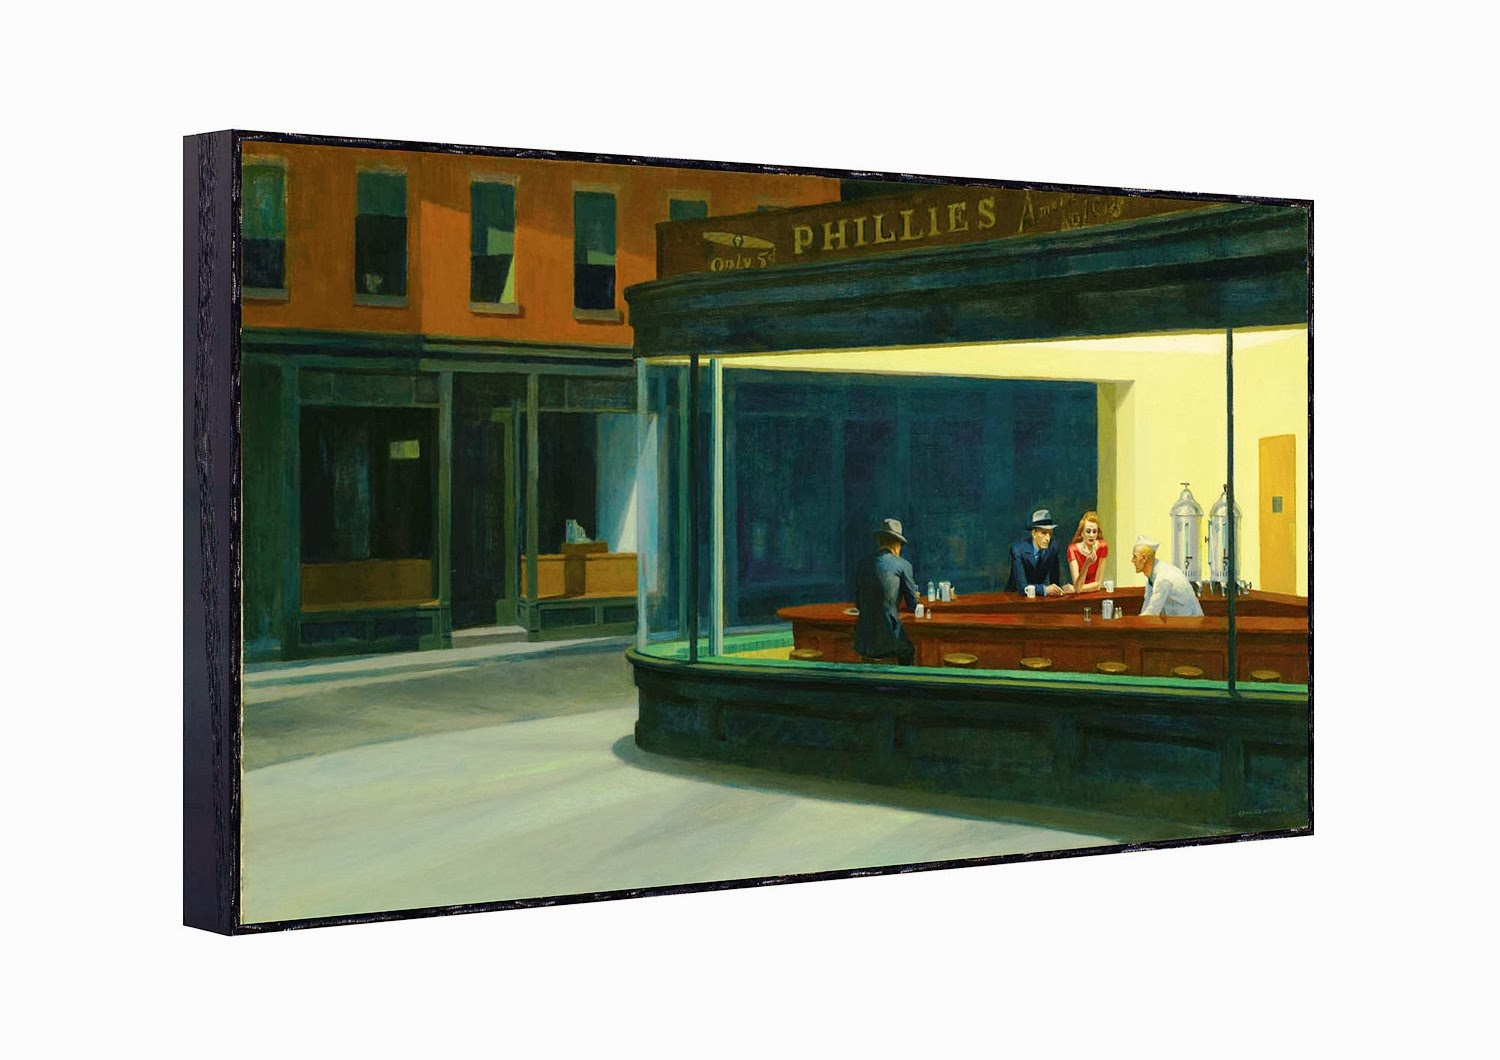 https://www.touchofmodern.com/sales/20th-century-masters/edward-hopper-nighthawks?share_invite_token=WQ3PD6V0